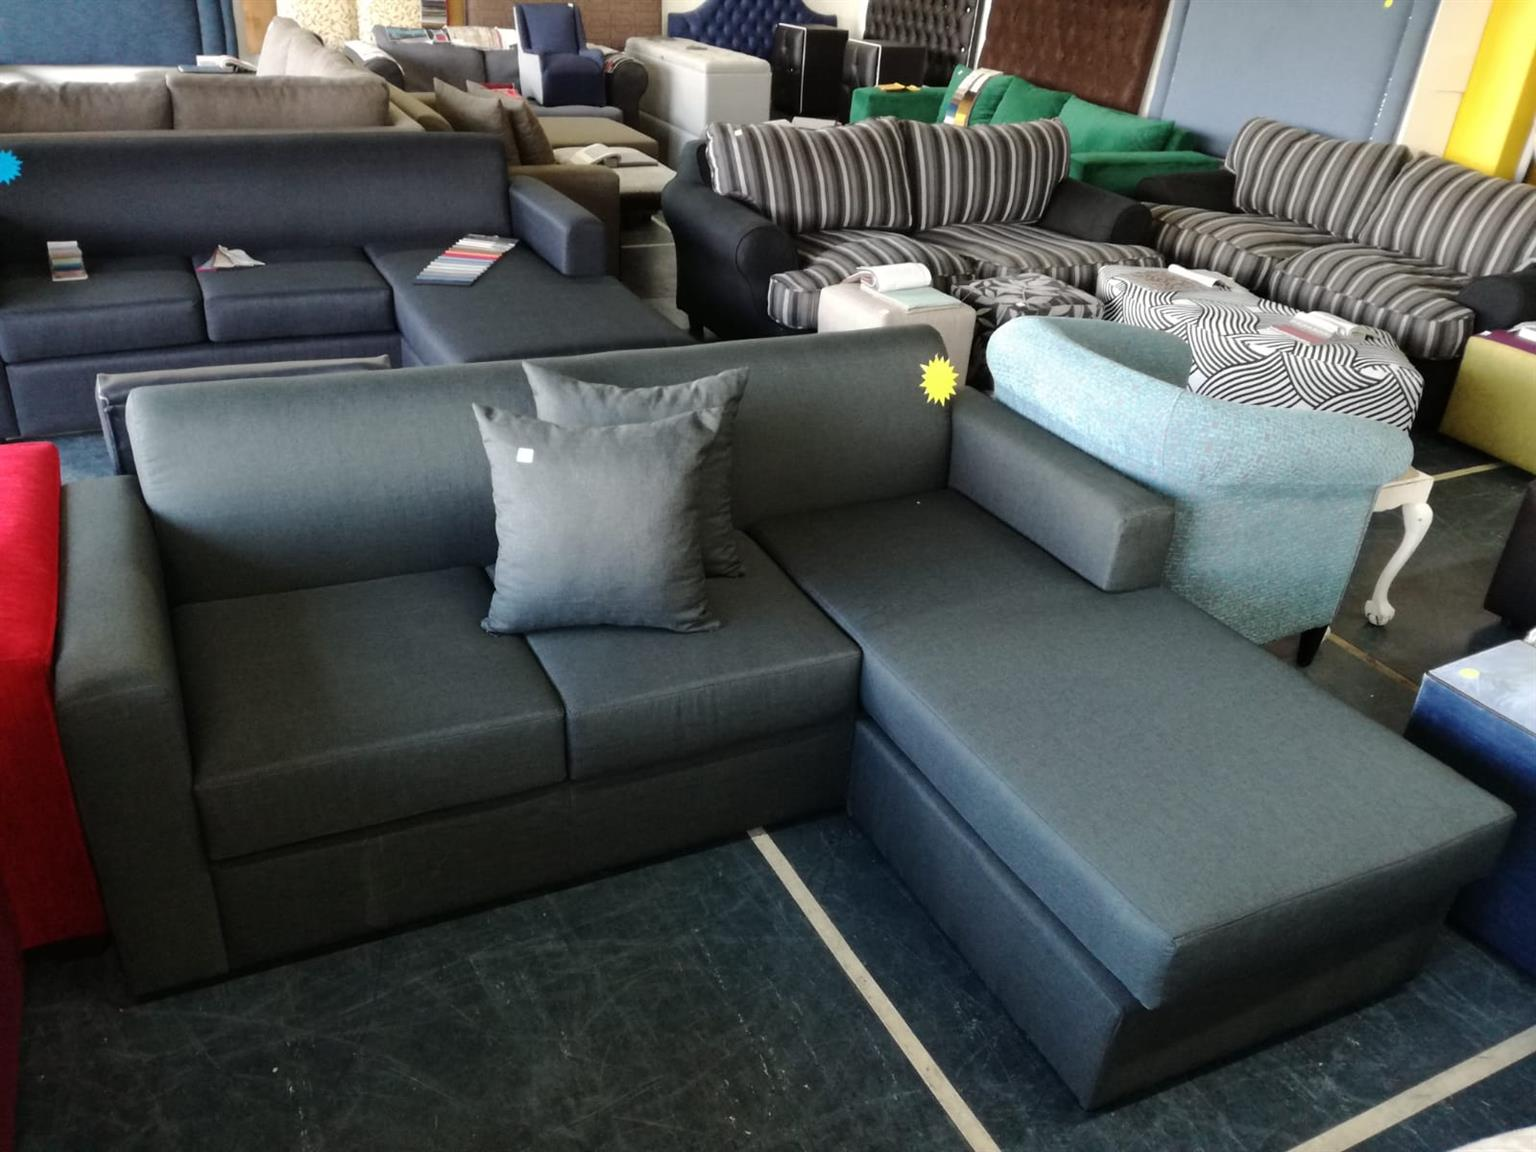 Budget friendly L-shaped couch